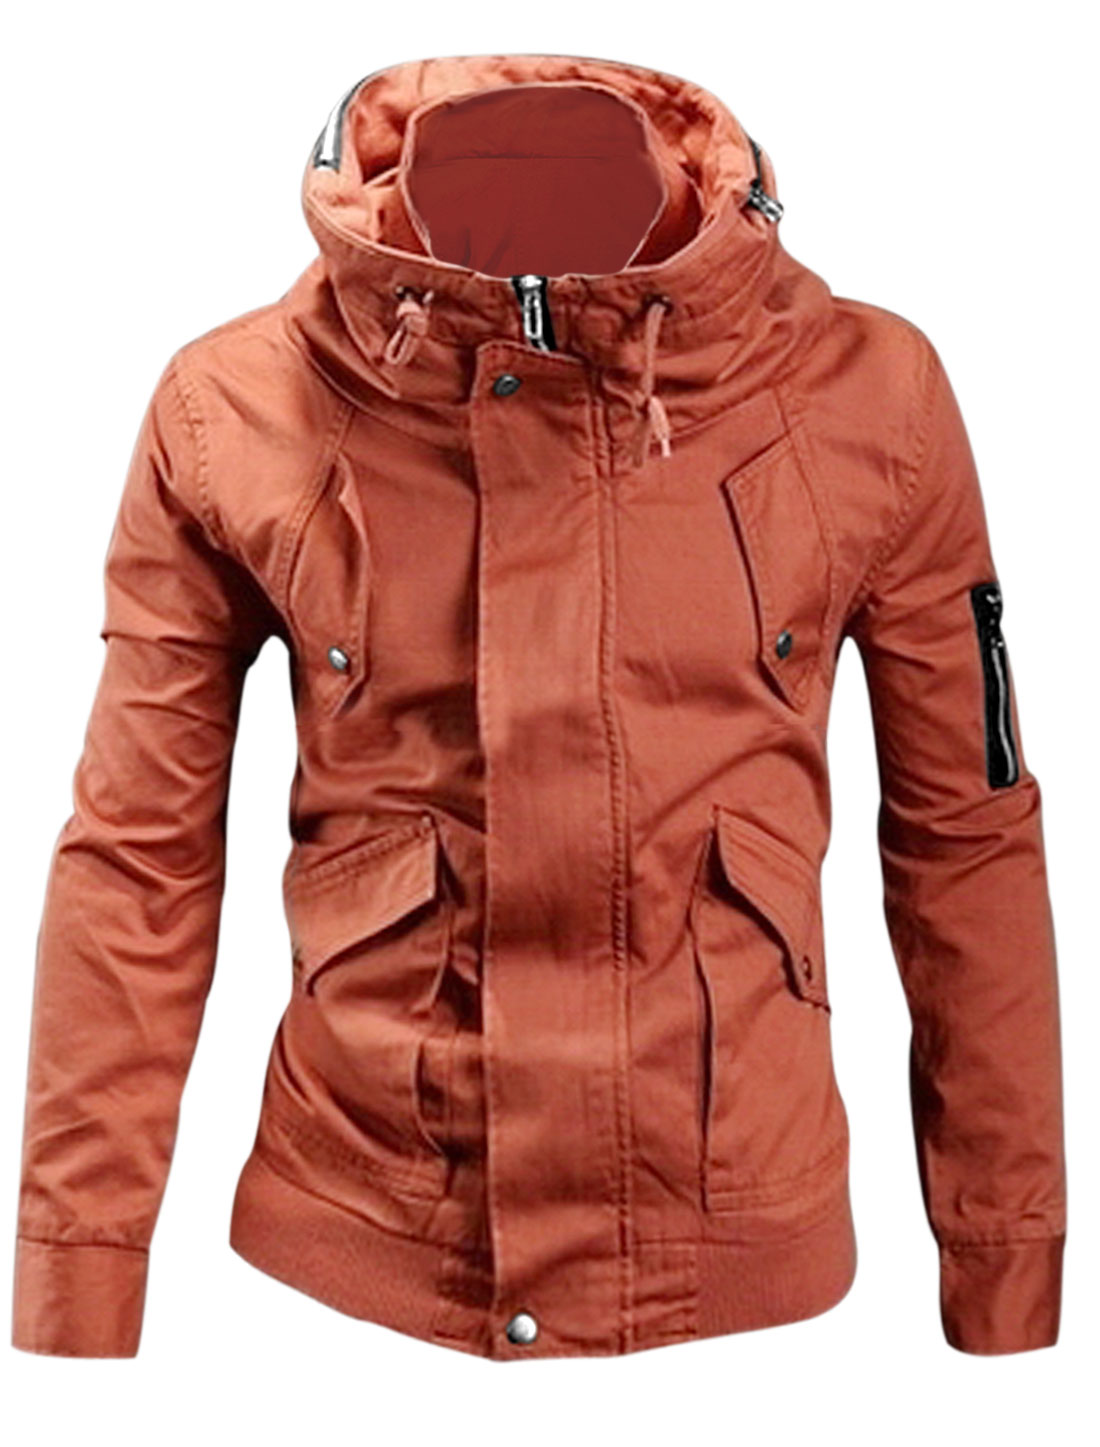 Men Convertible Collar Zip-Up Pocket New Style Jacket Orange M